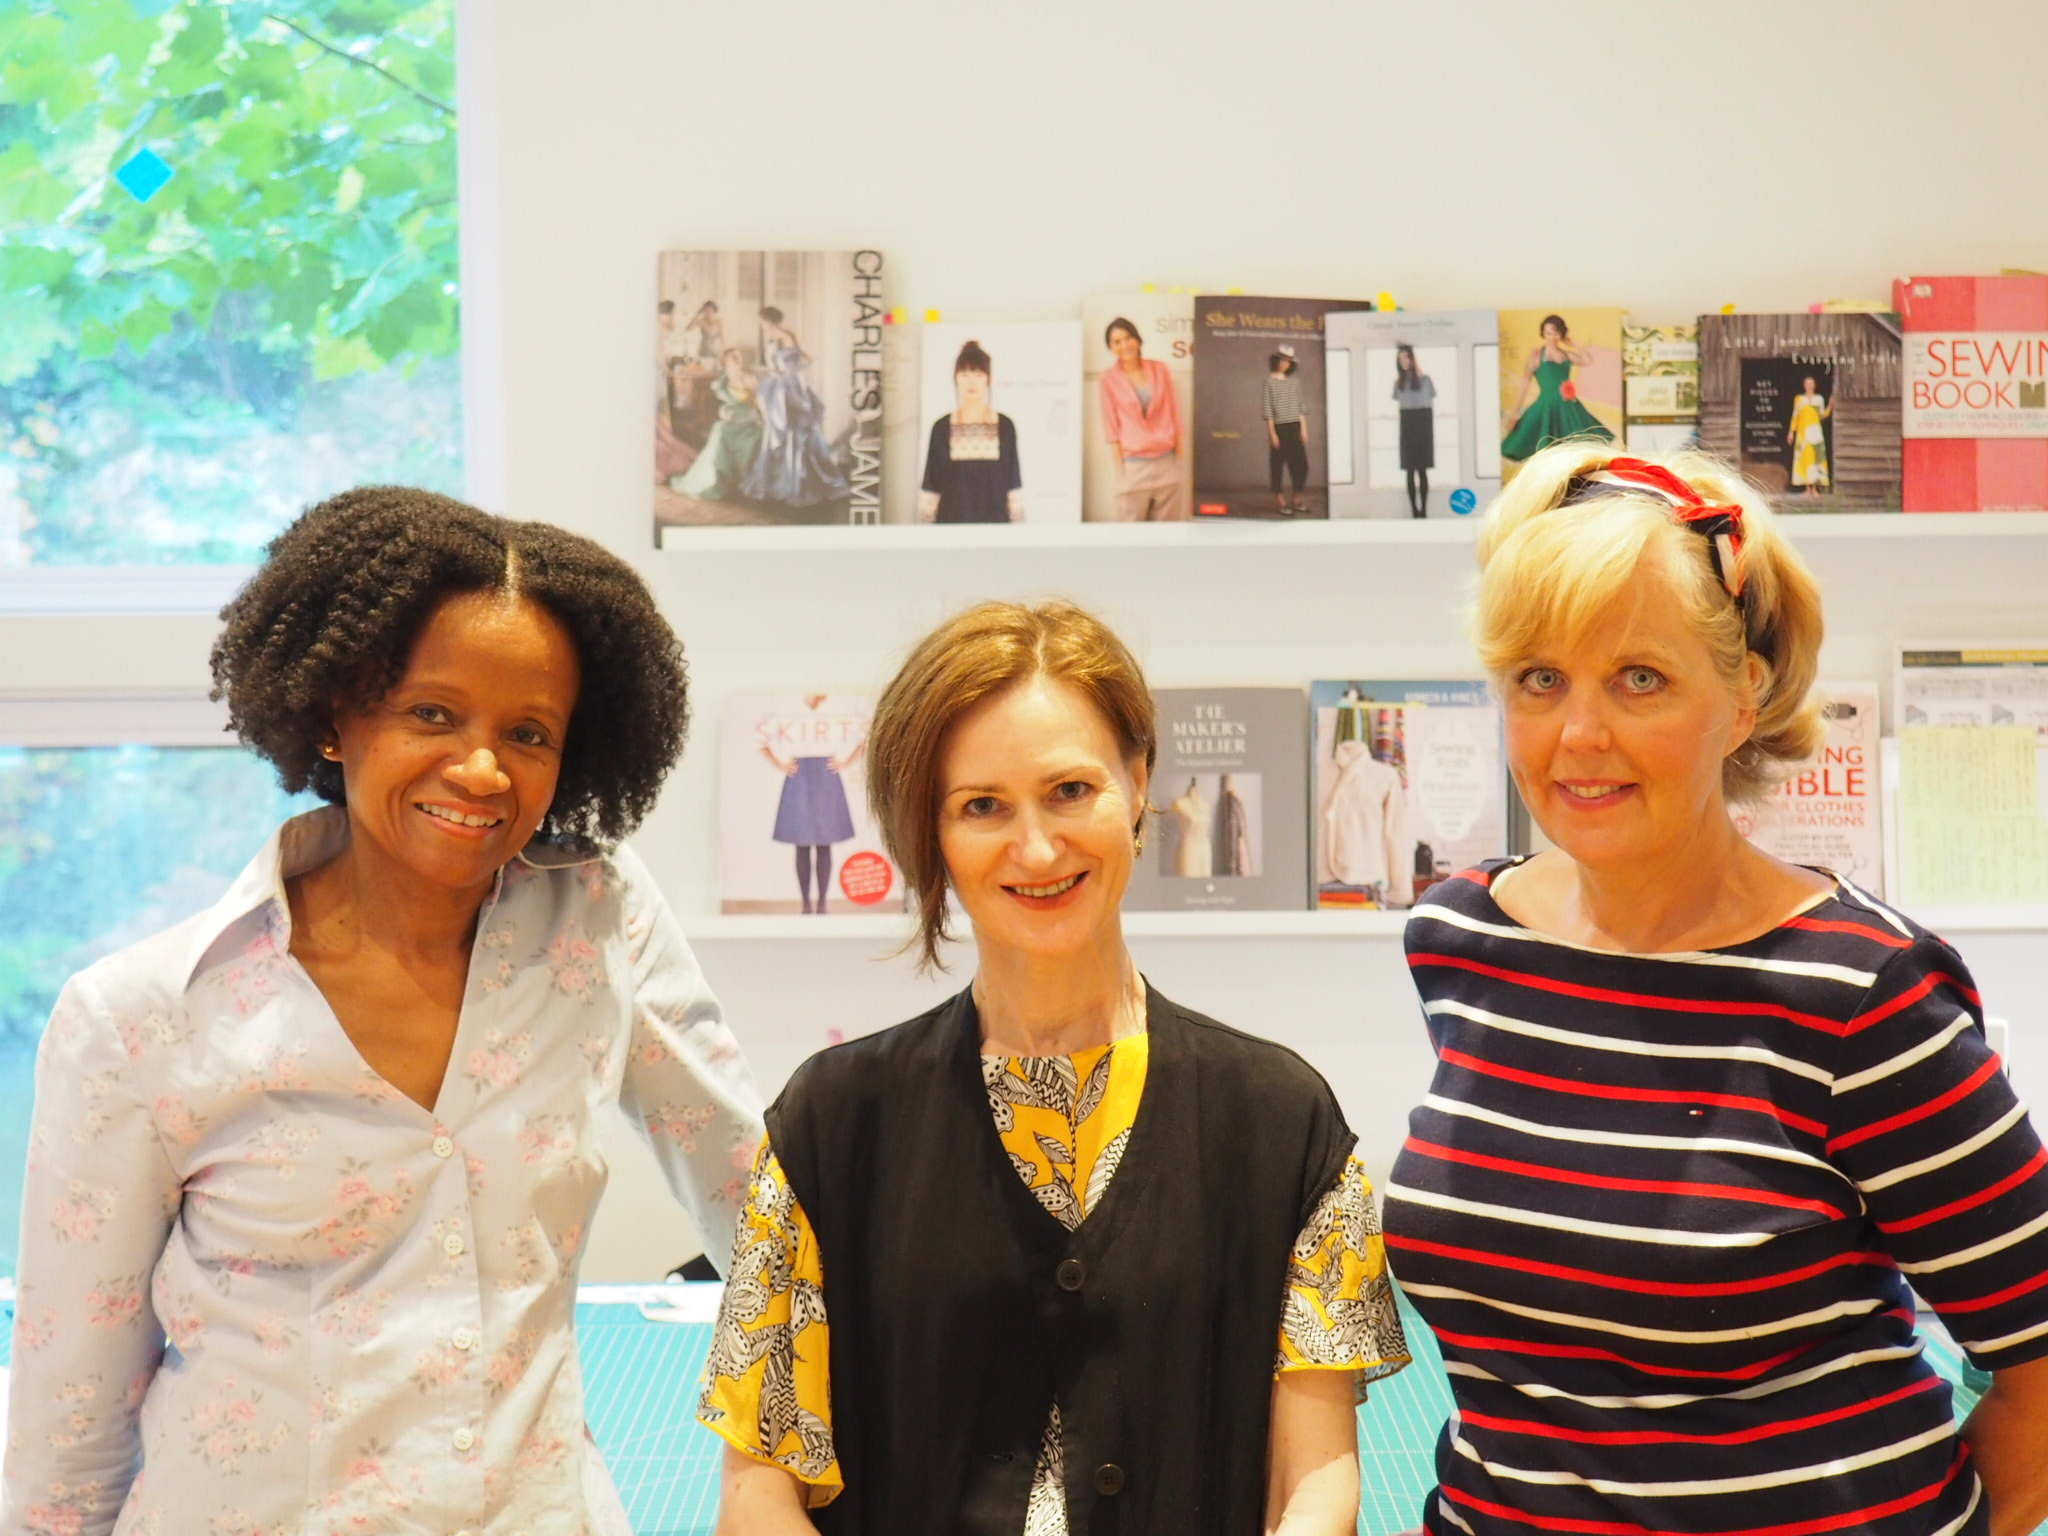 Teresa Murray, Irina Siegel, Debbie Roberts (from left to right)